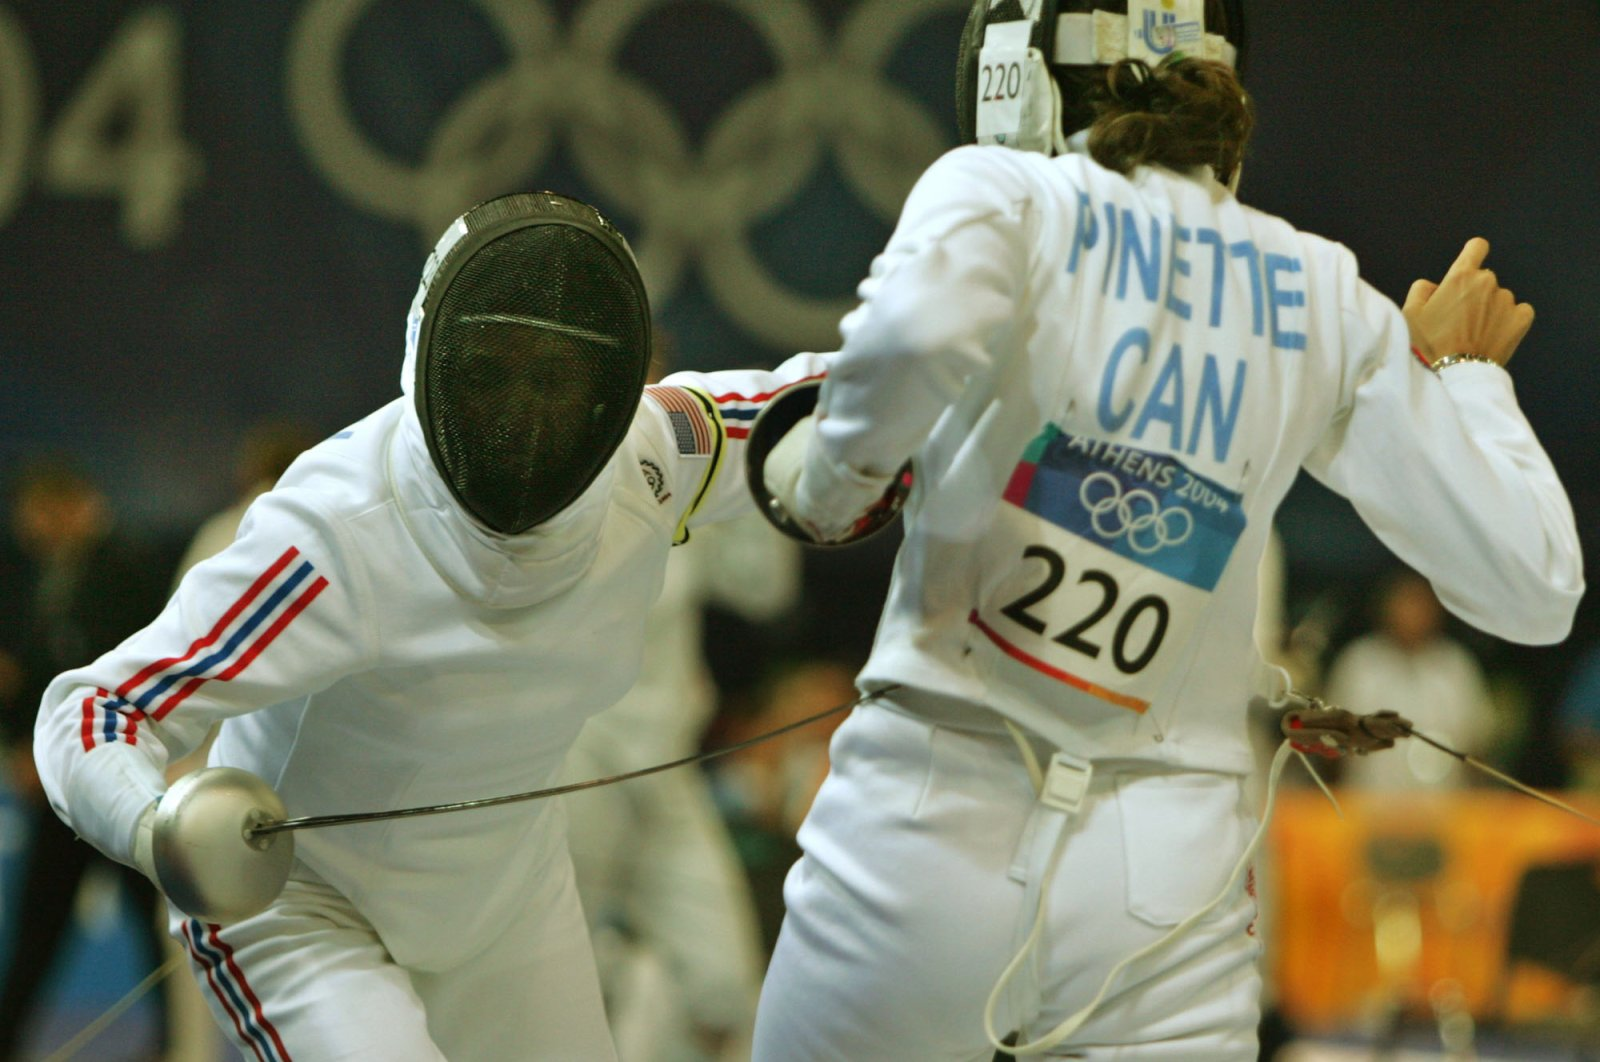 Anita Allen of the United States (L) attacks Monica Pinette of Canada during their bout in Athens, Aug. 27, 2004. (AP Photo)